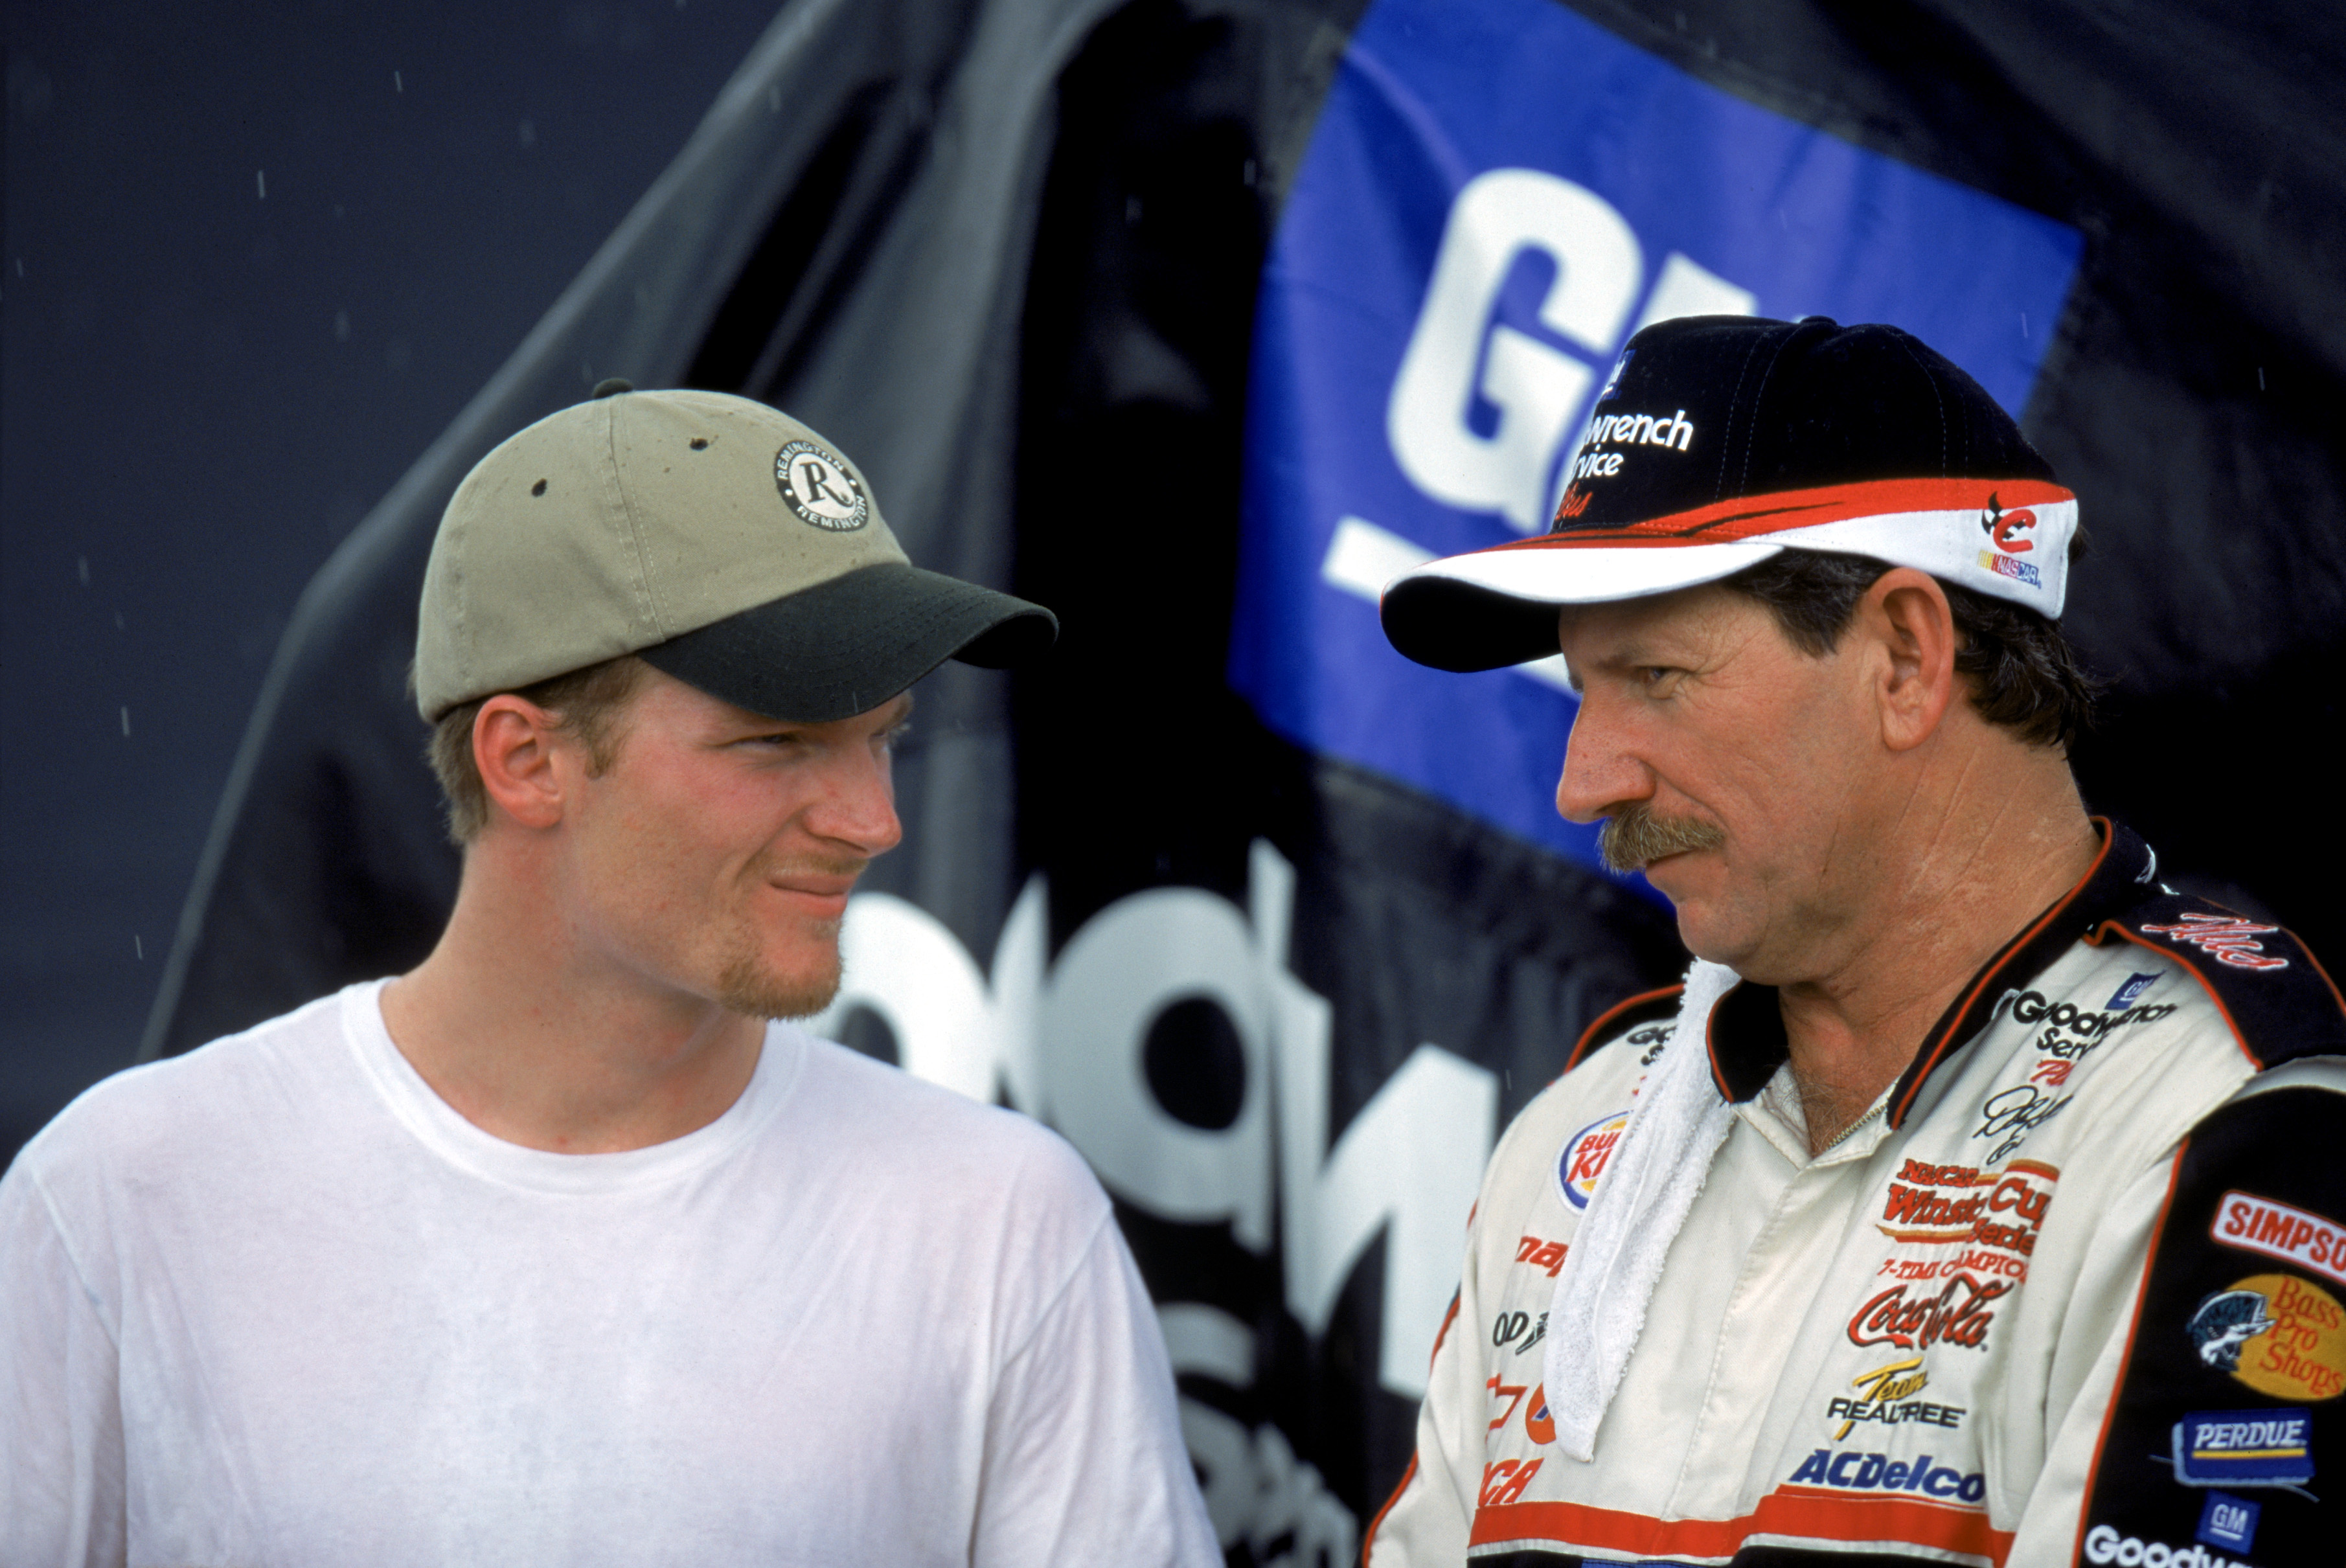 Dale Earnhardt Jr. Admits He Enjoys Talking About His Father's Failures